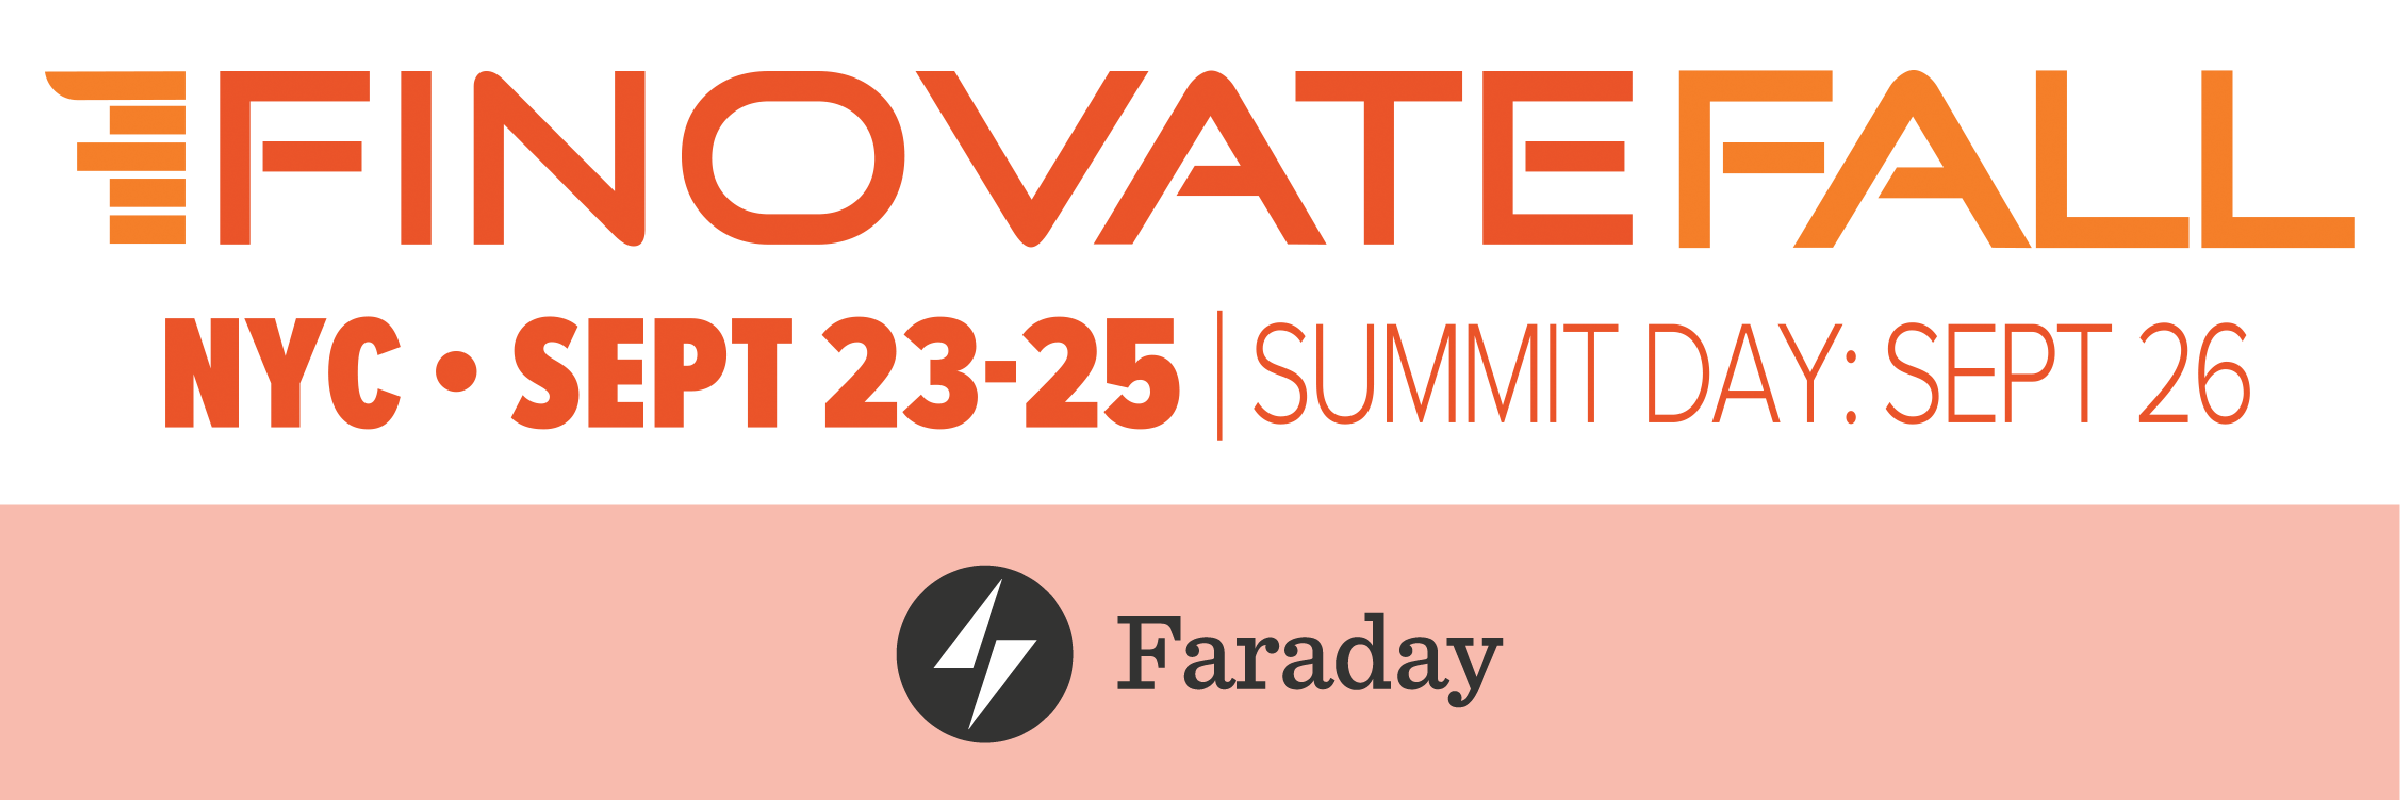 finovatefall and faraday